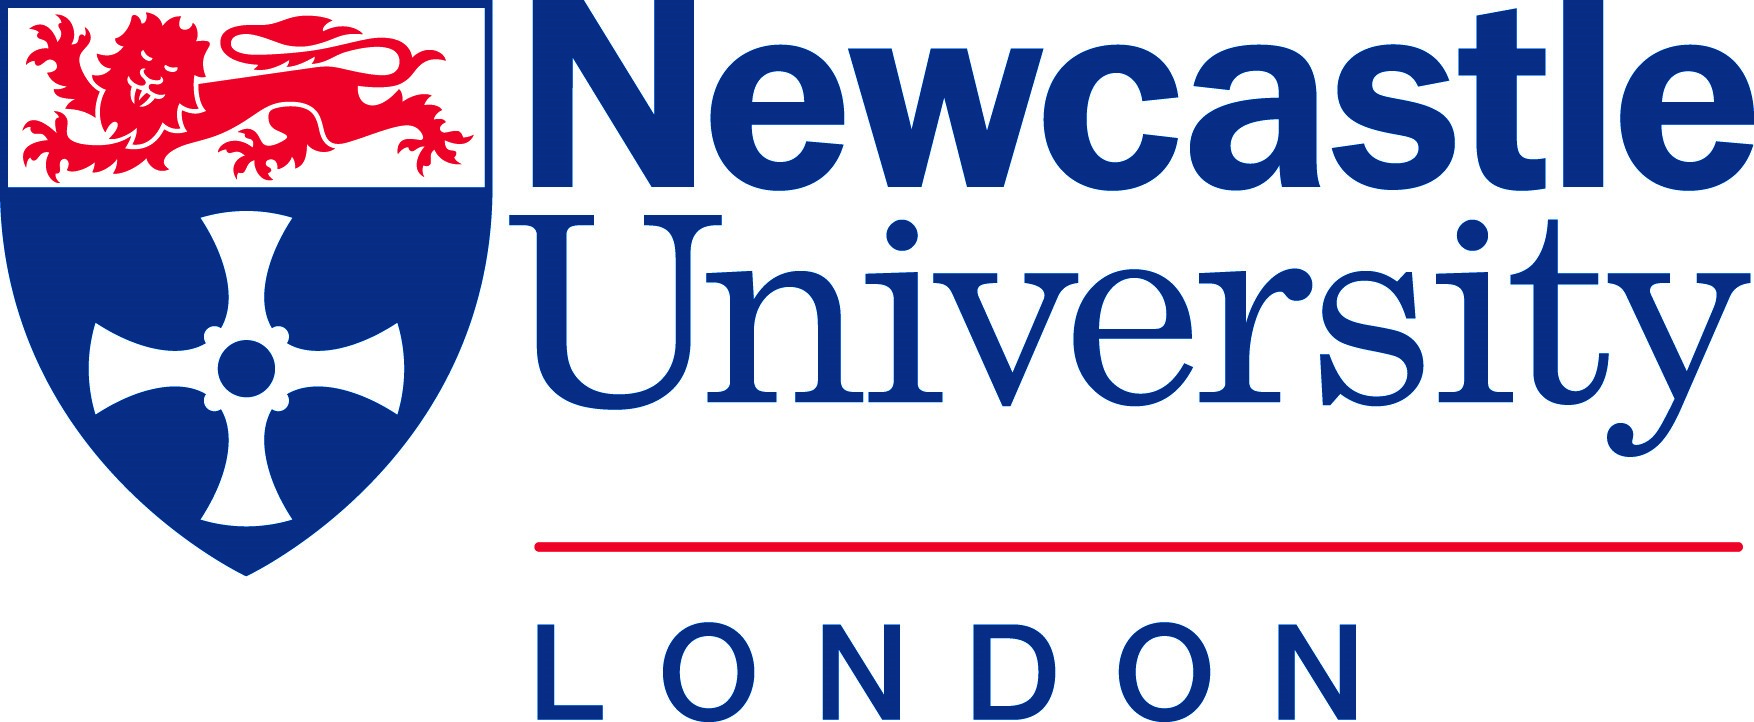 Newcastle Uni, London